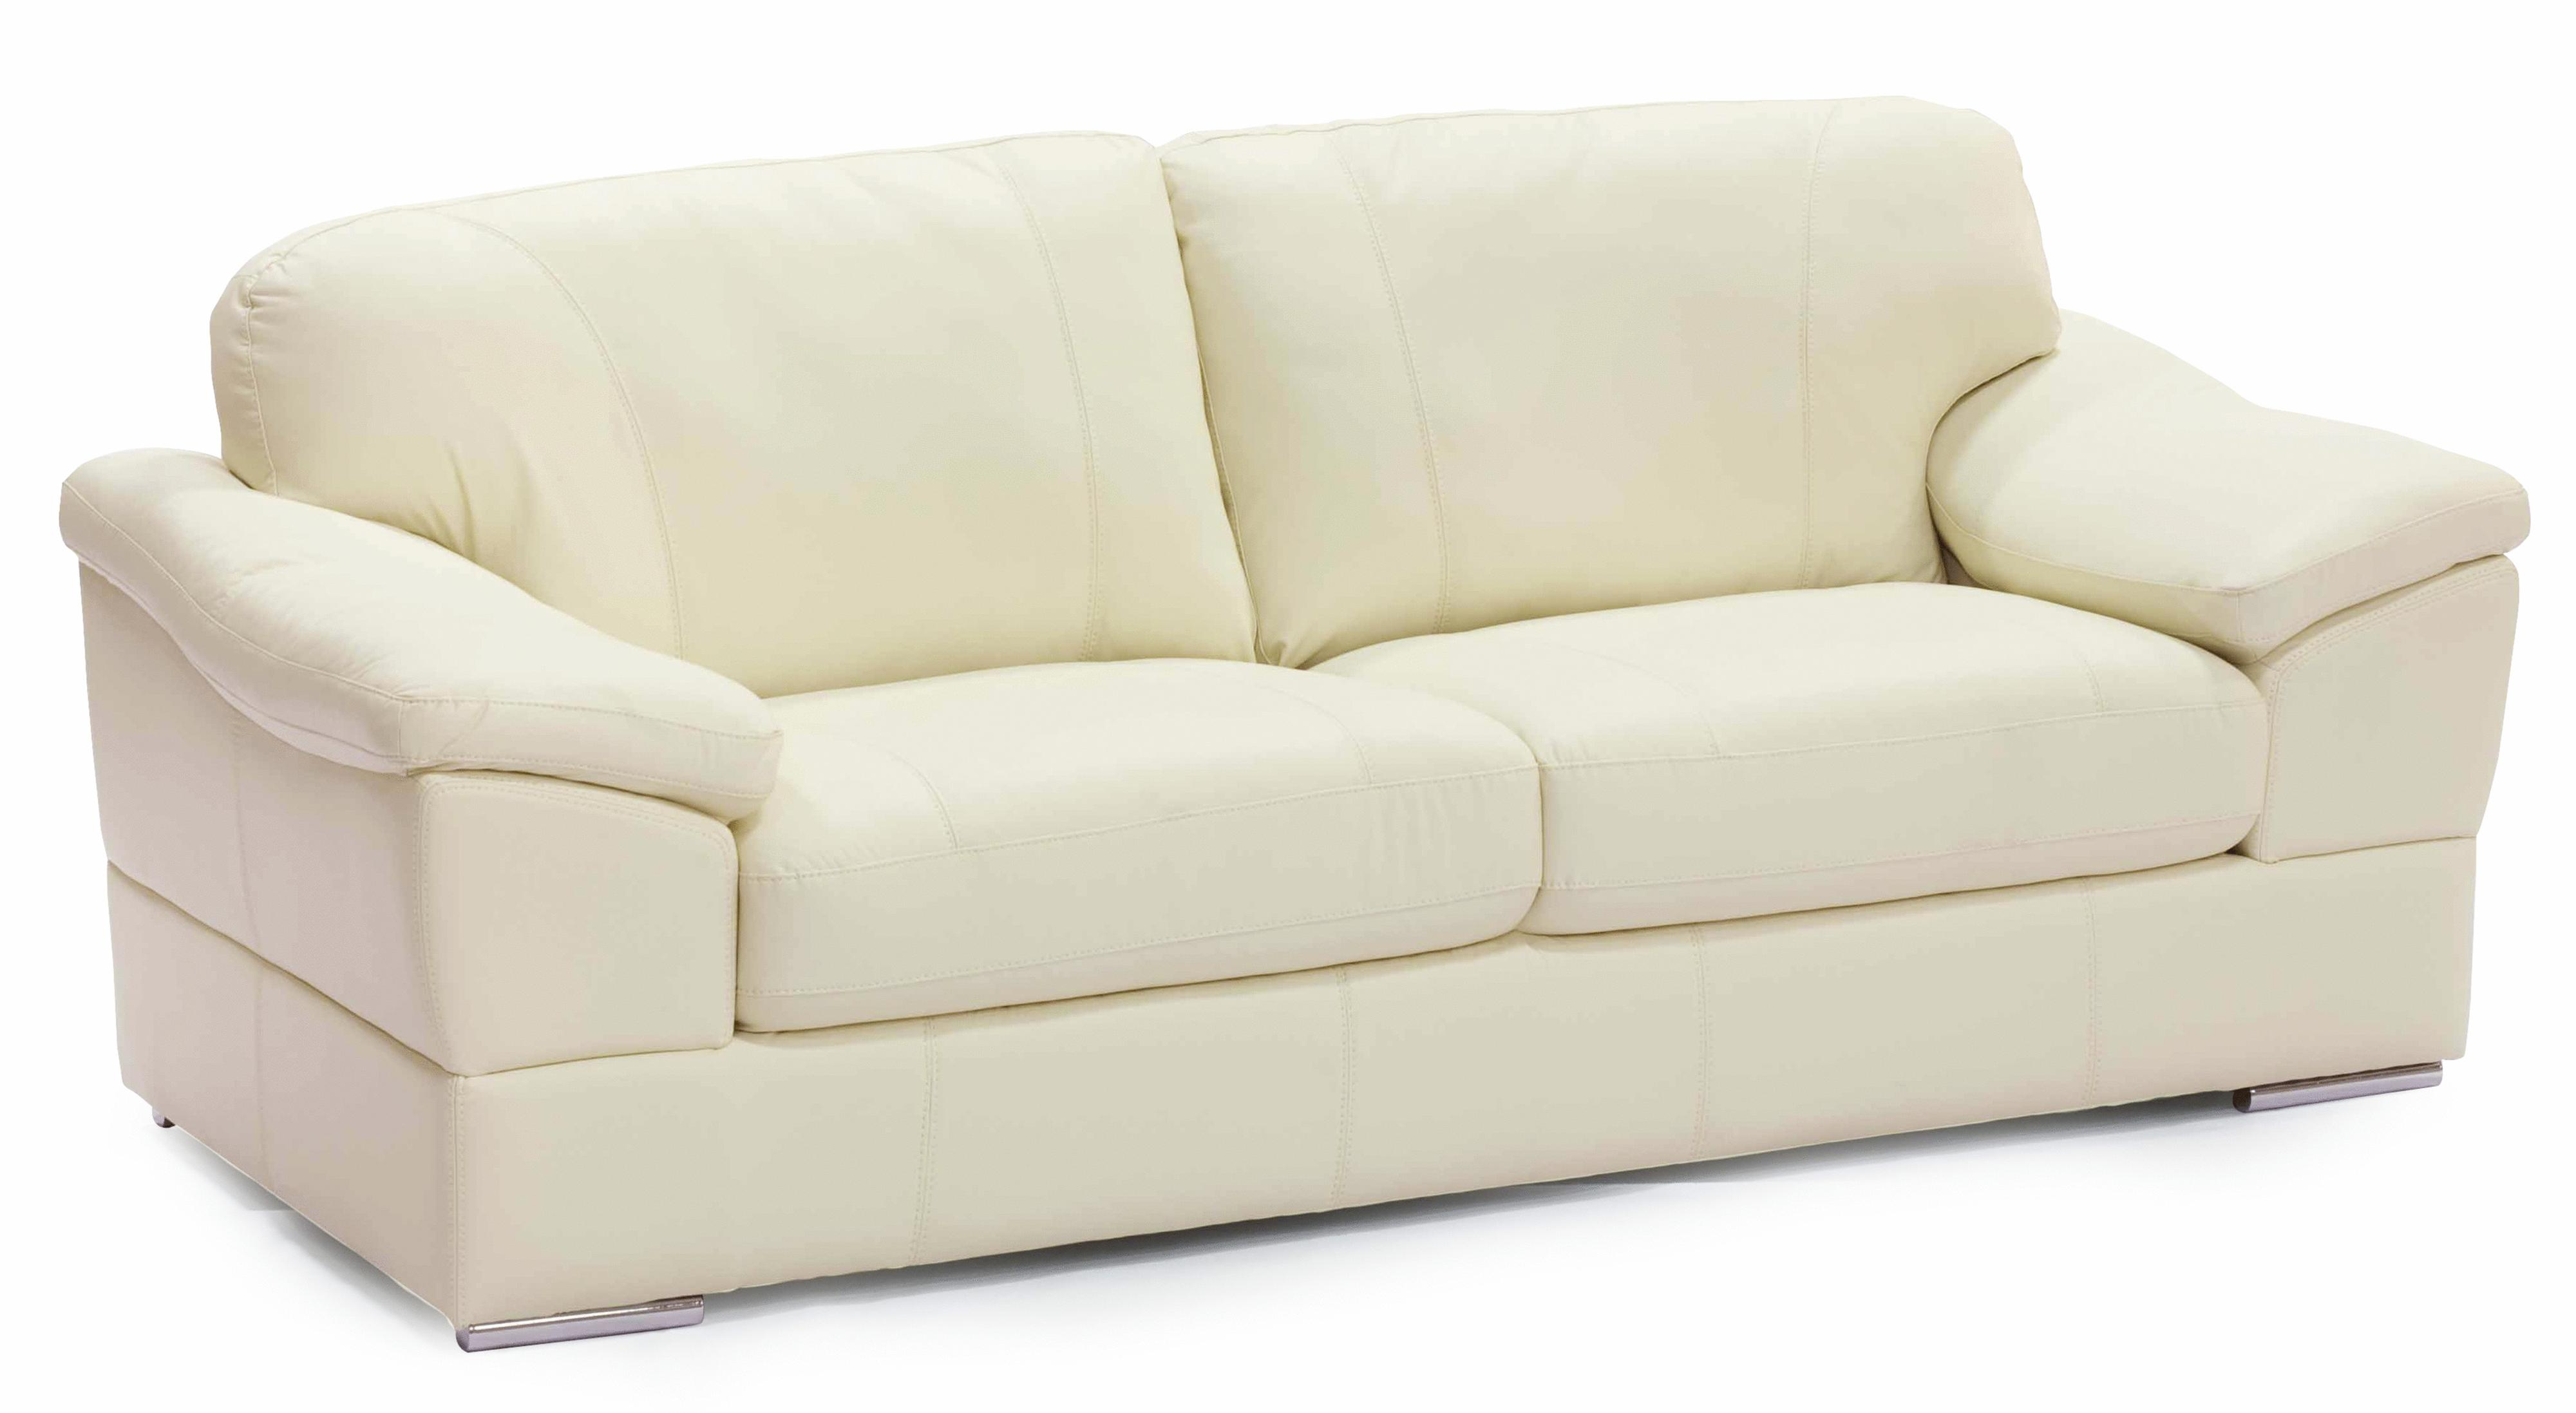 palliser stationary sofas sofa com bluebell legs acapulco casual with pillow arms olinde 39s